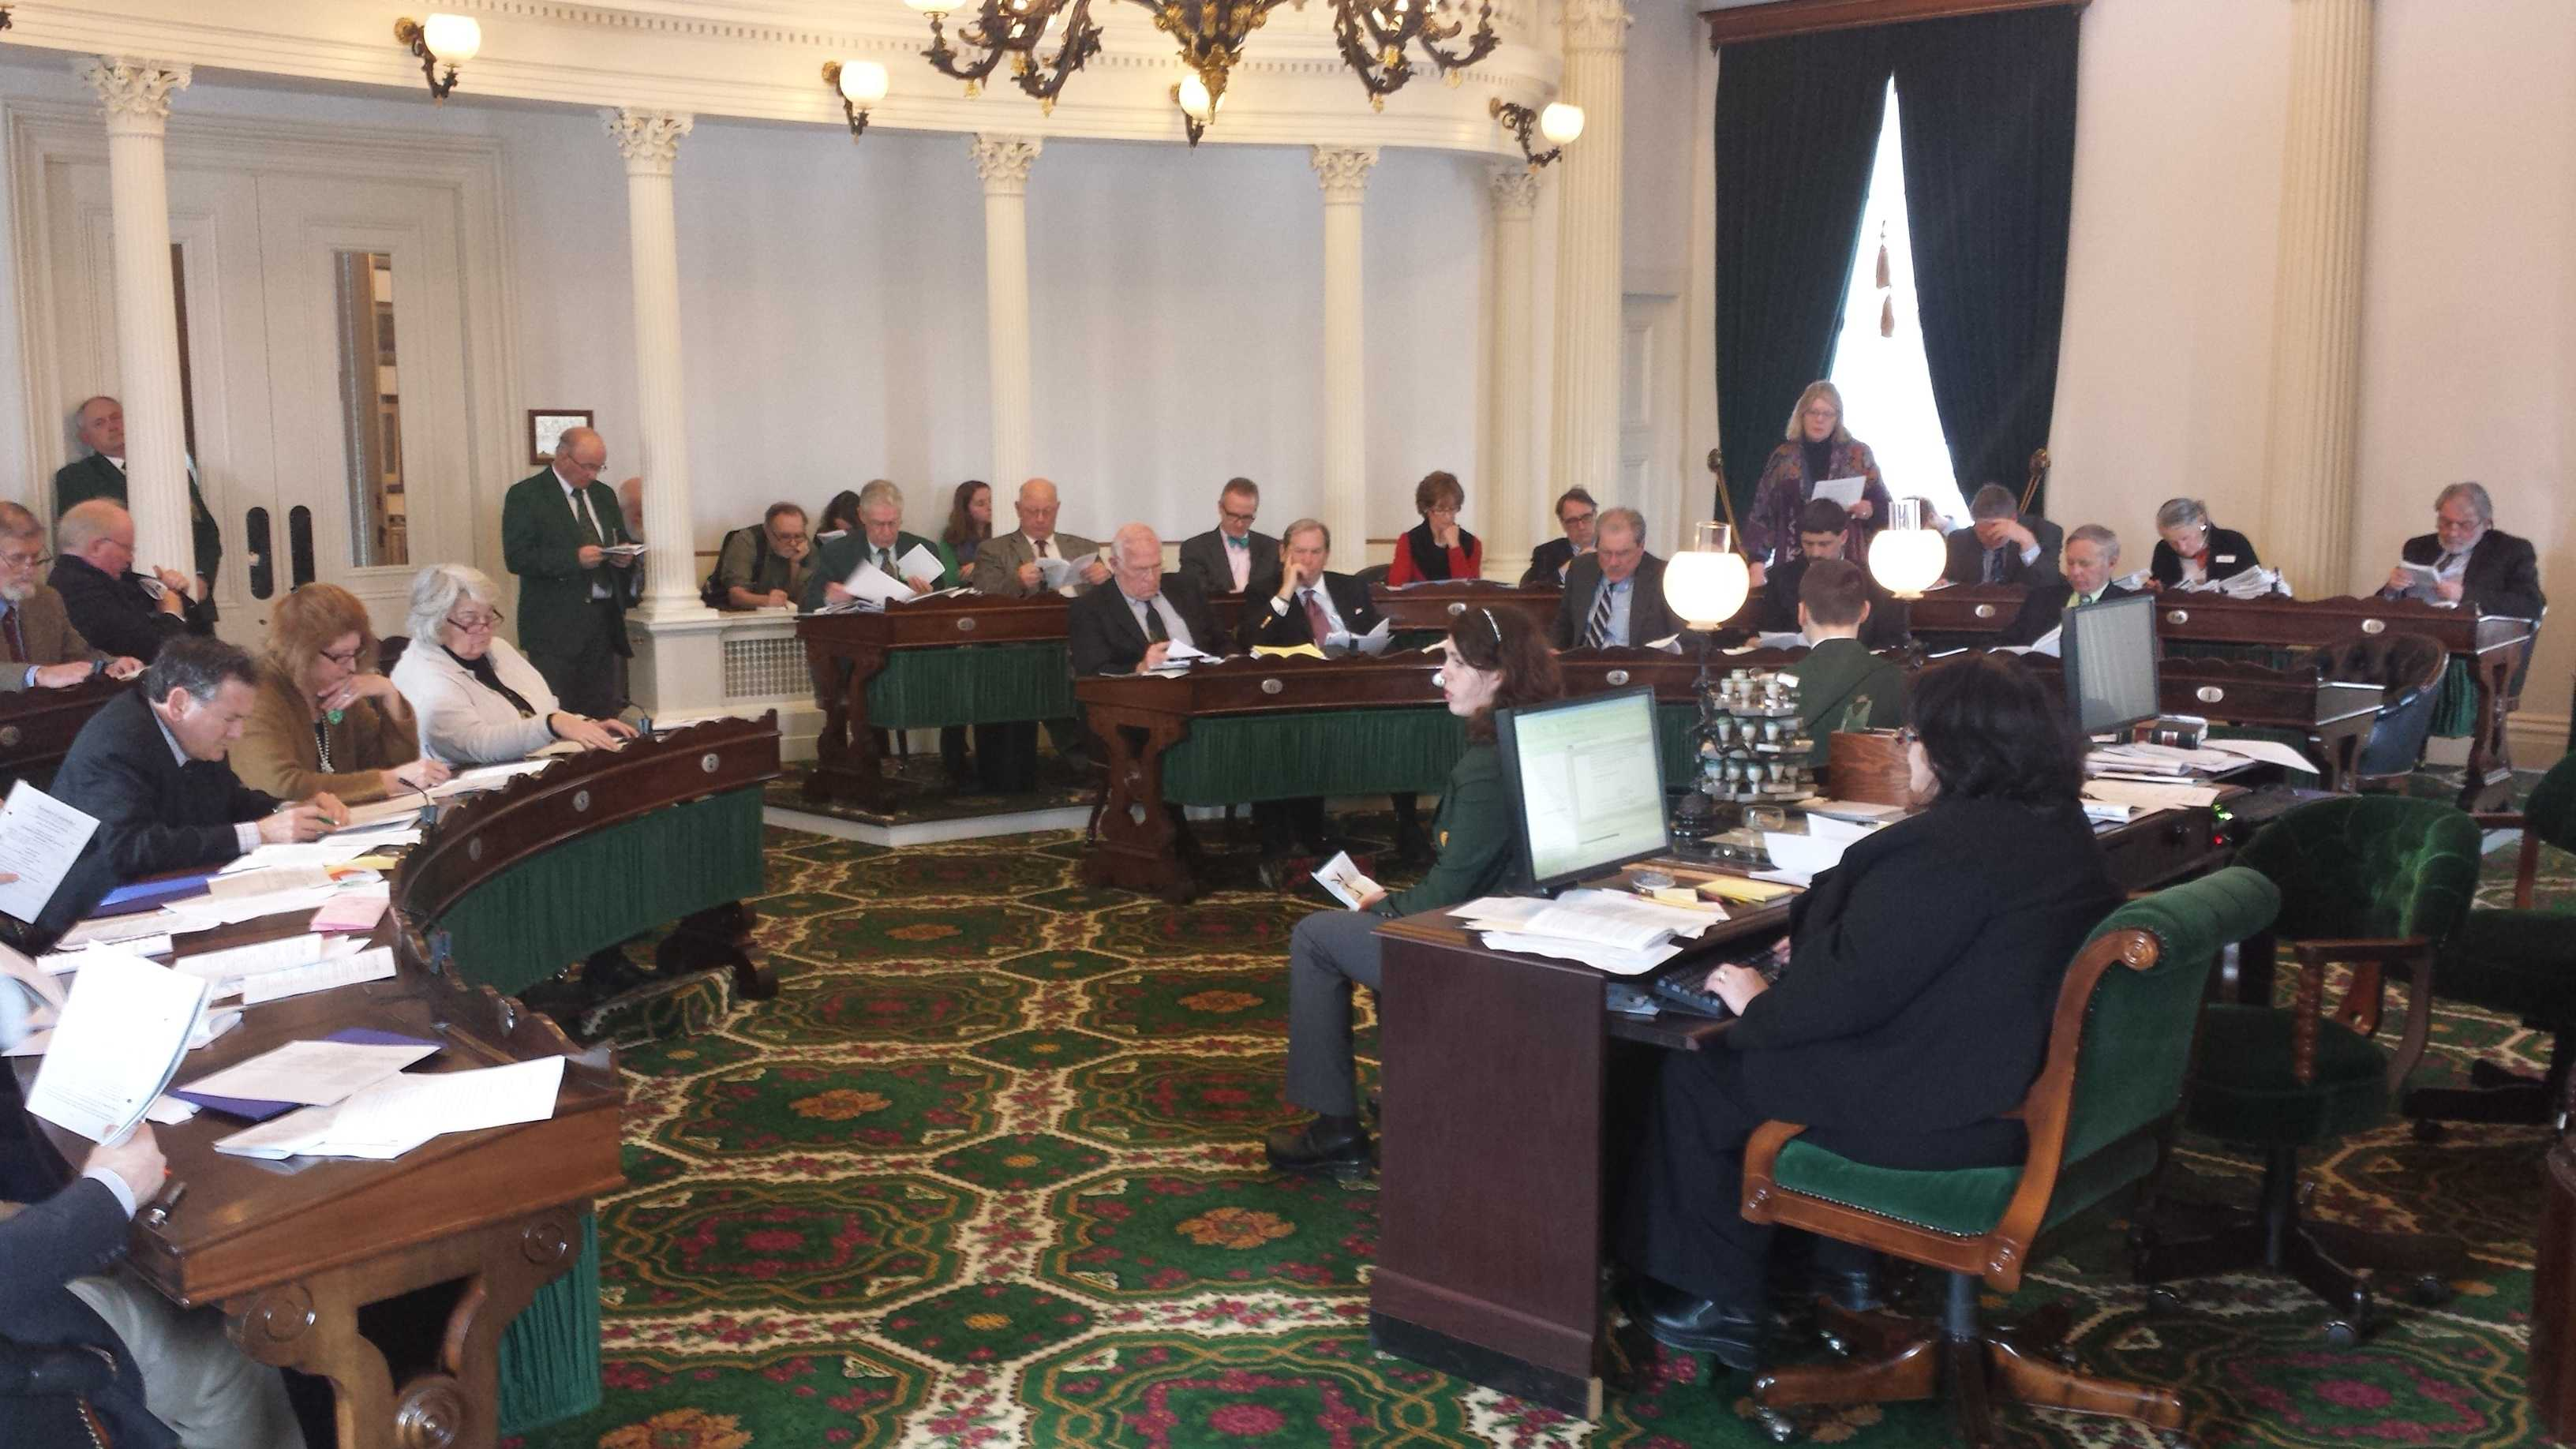 Senate gives primary approval of forced medication of psychiatric patients - img 2-26